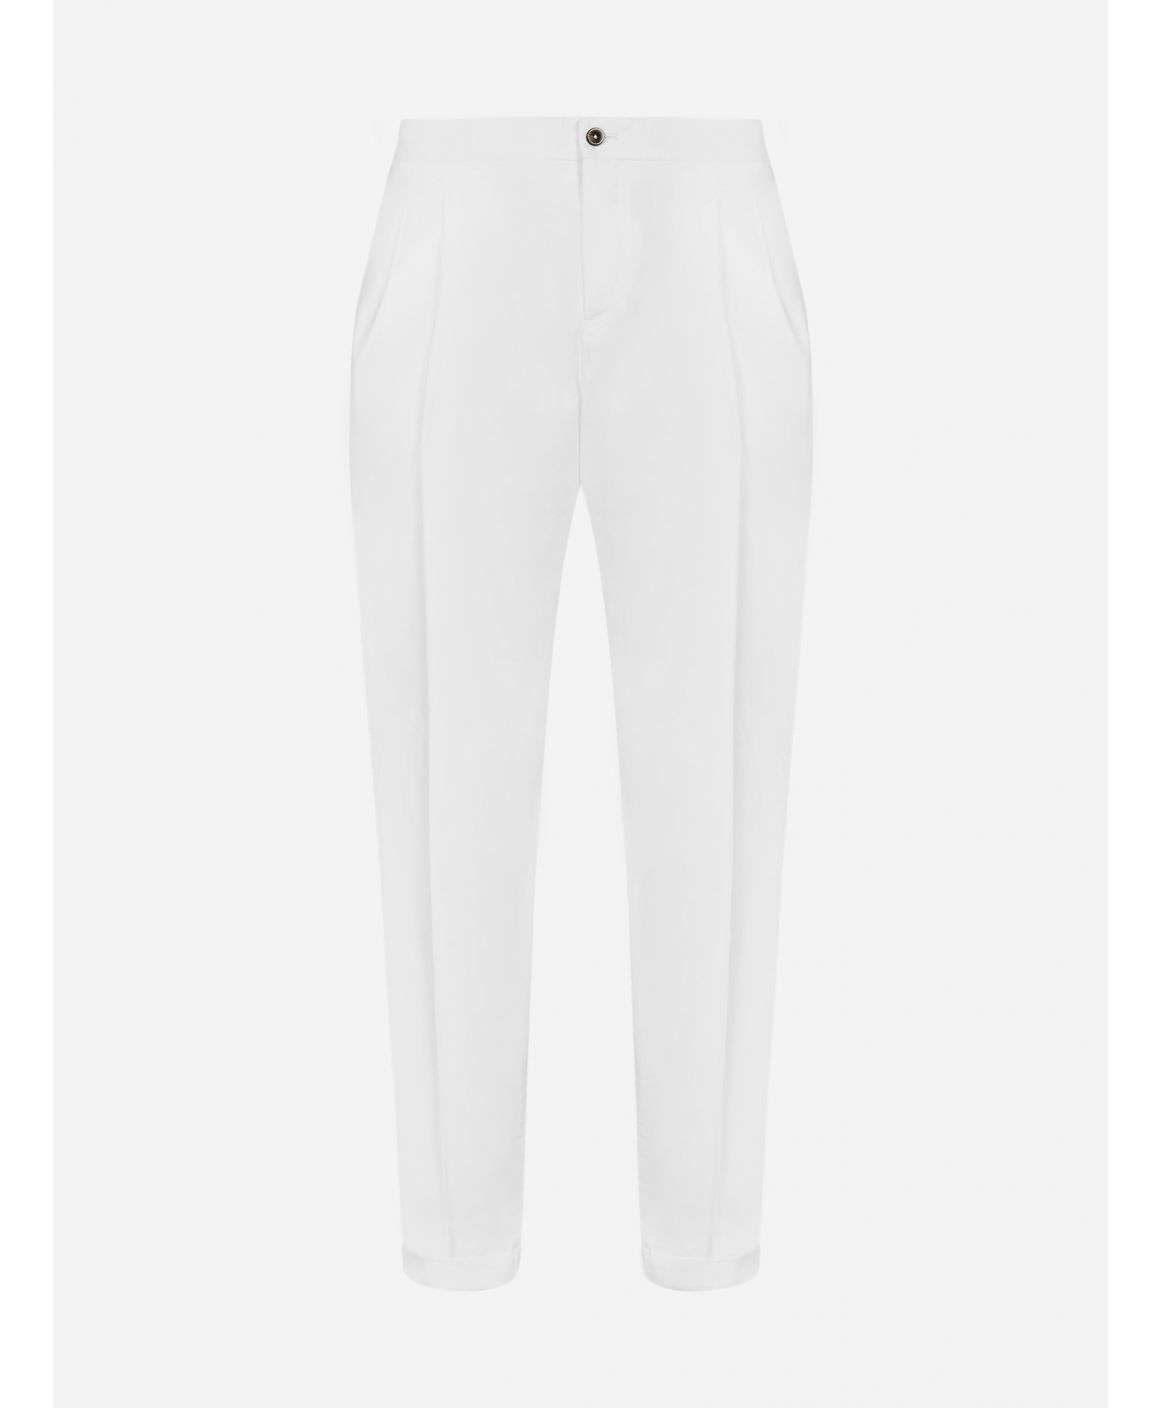 Business Sonny stretch cotton trousers